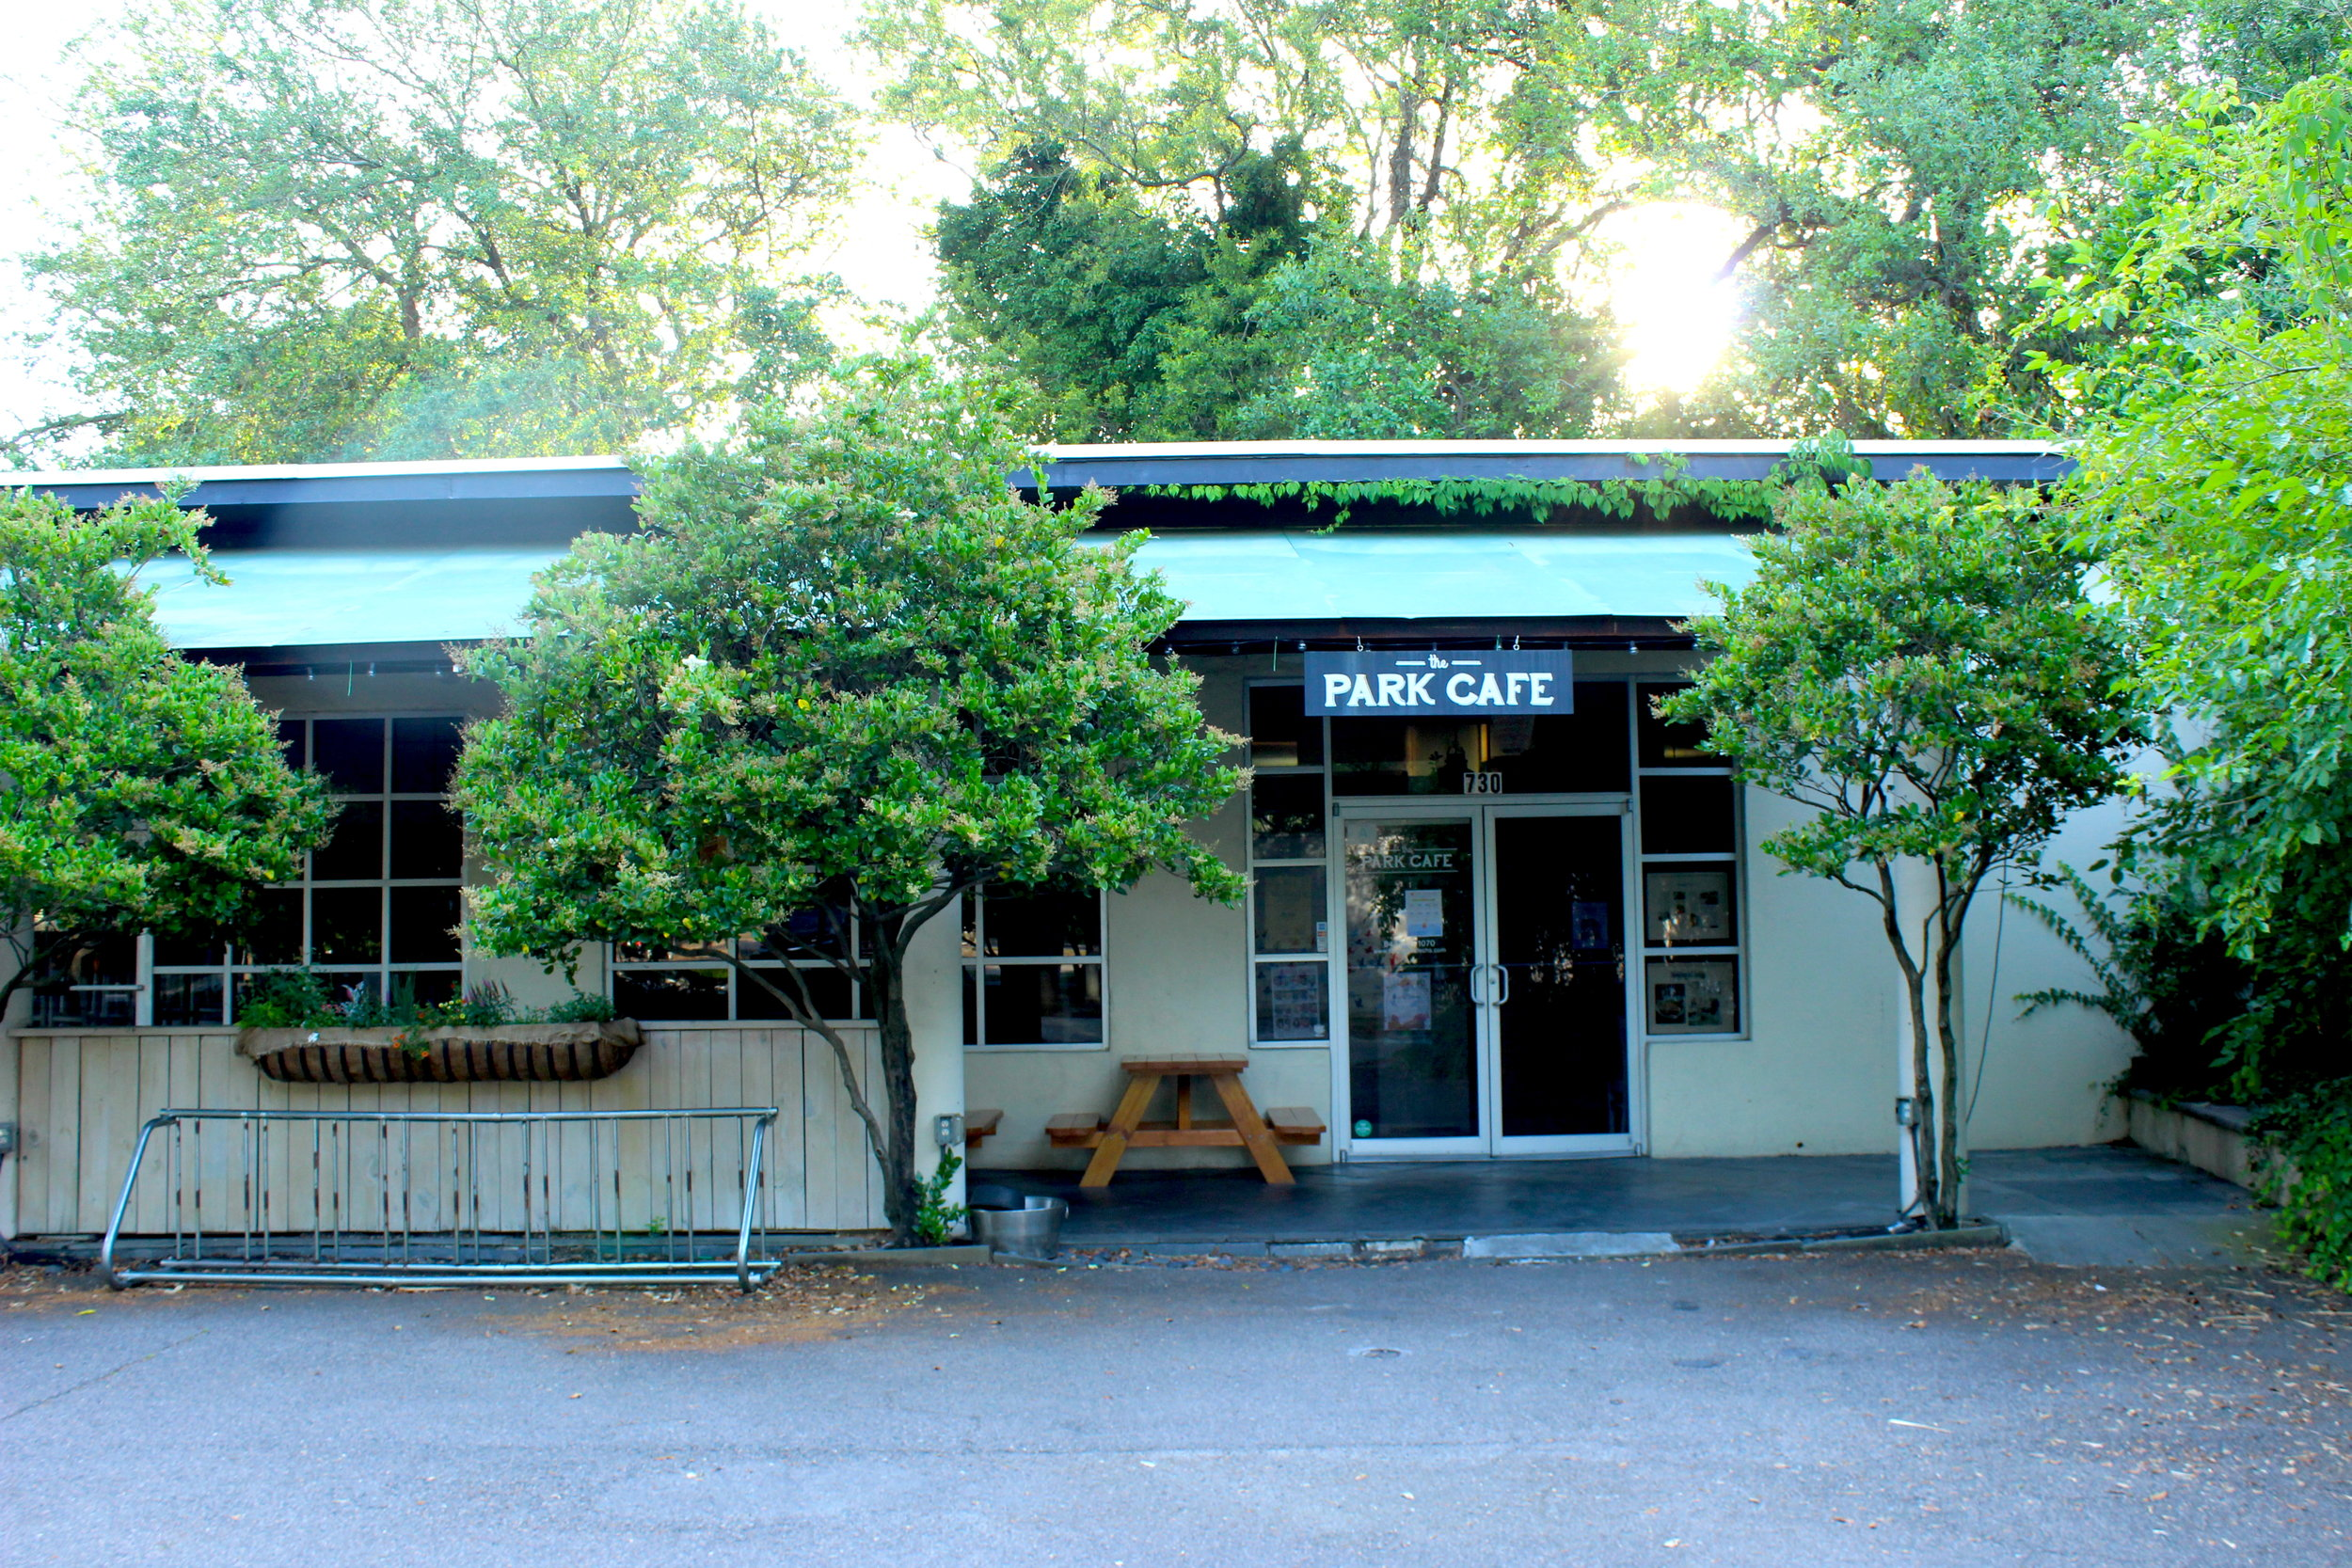 The Park Cafe, May 2019.